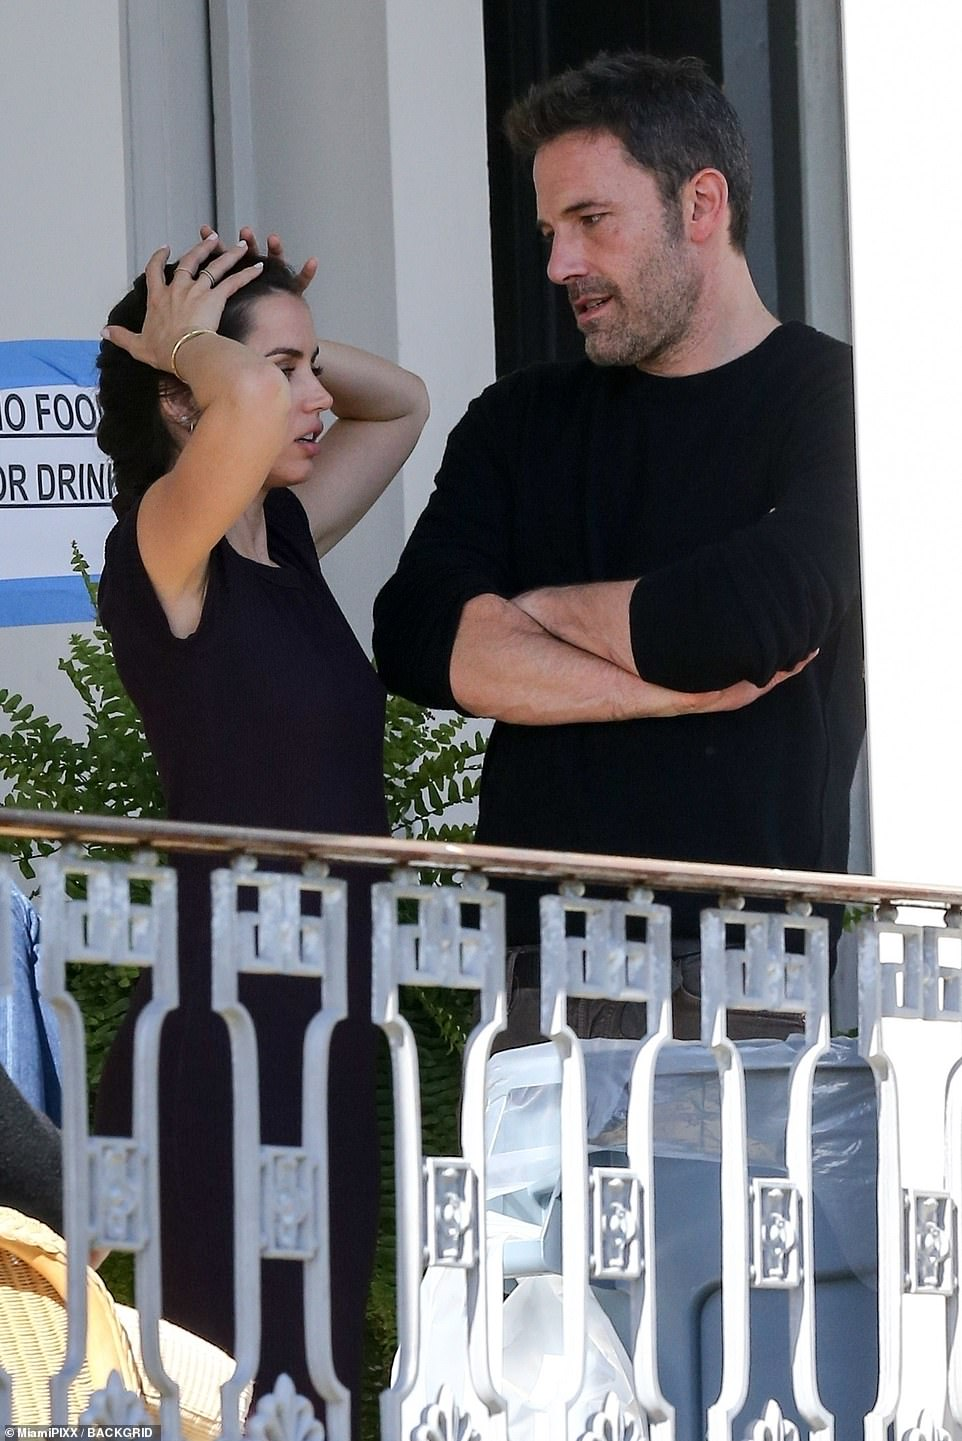 In the past: Ana and Ben were last seen publicly on Oct. 15 in Los Angeles when he greeted her with a smile